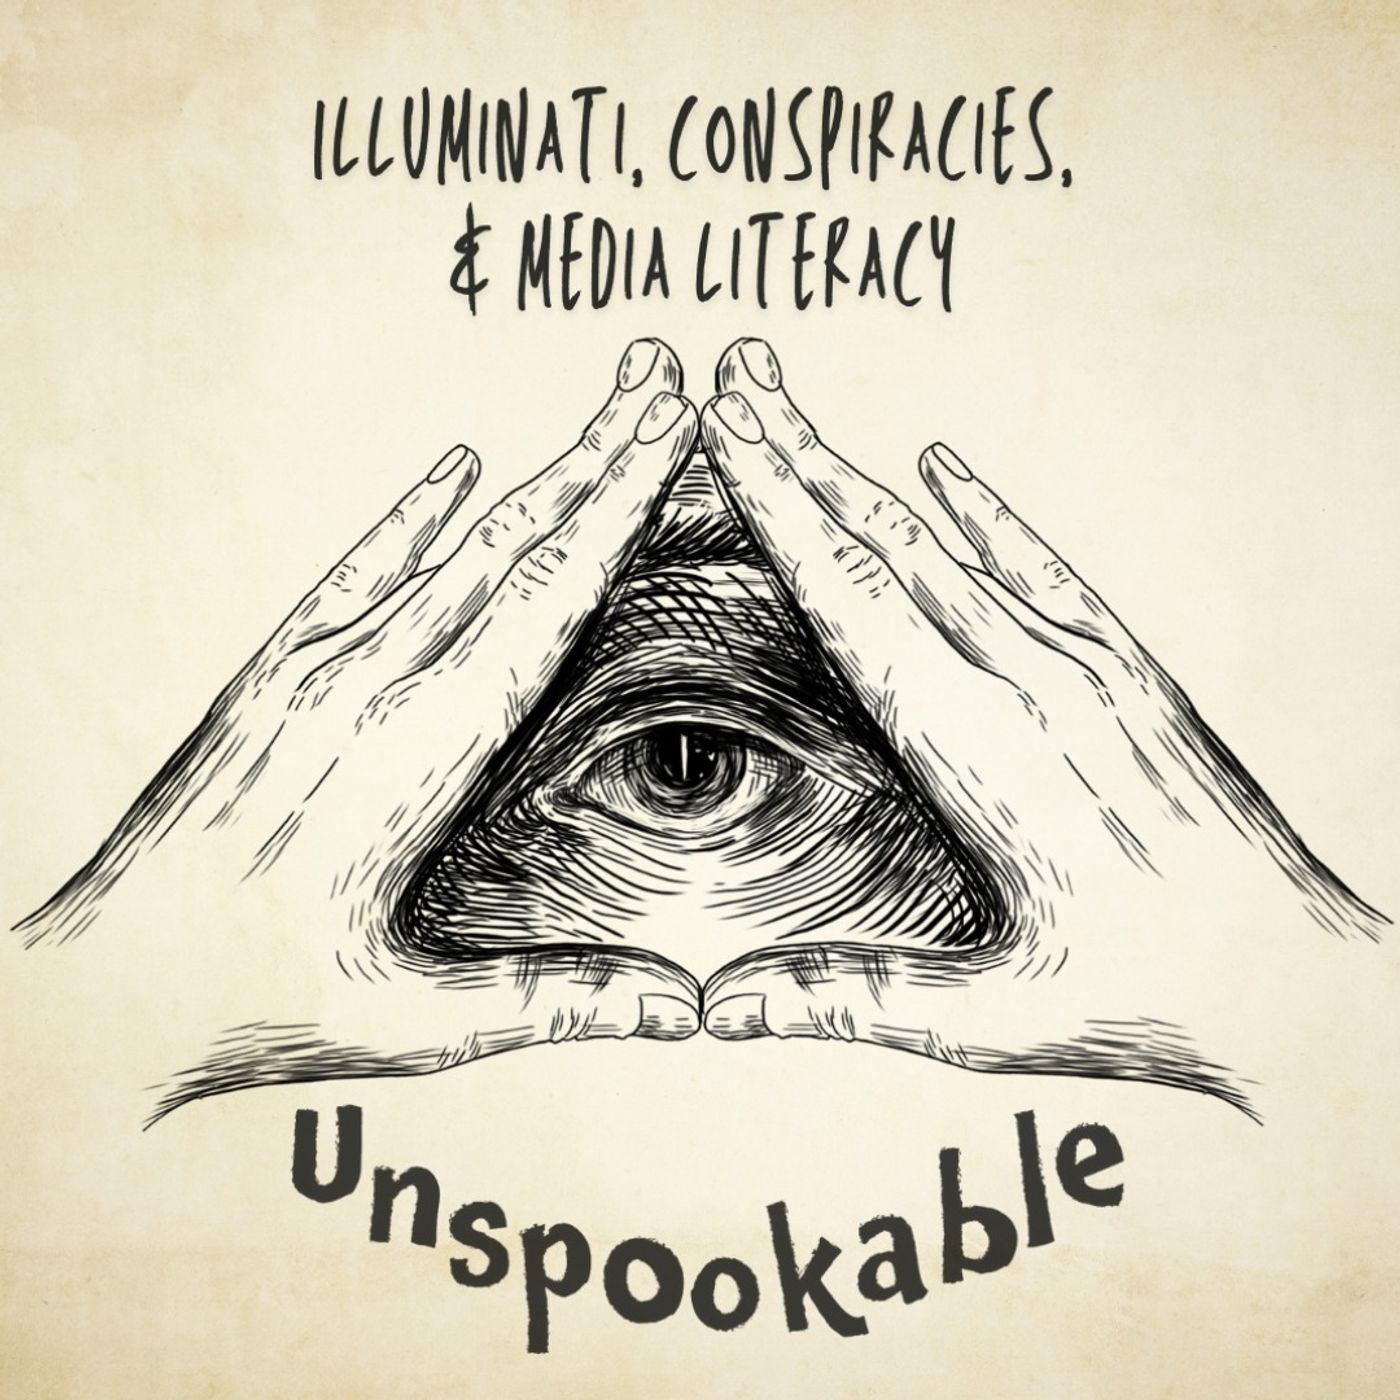 Episode 27: Illuminati, Conspiracies, & Media Literacy